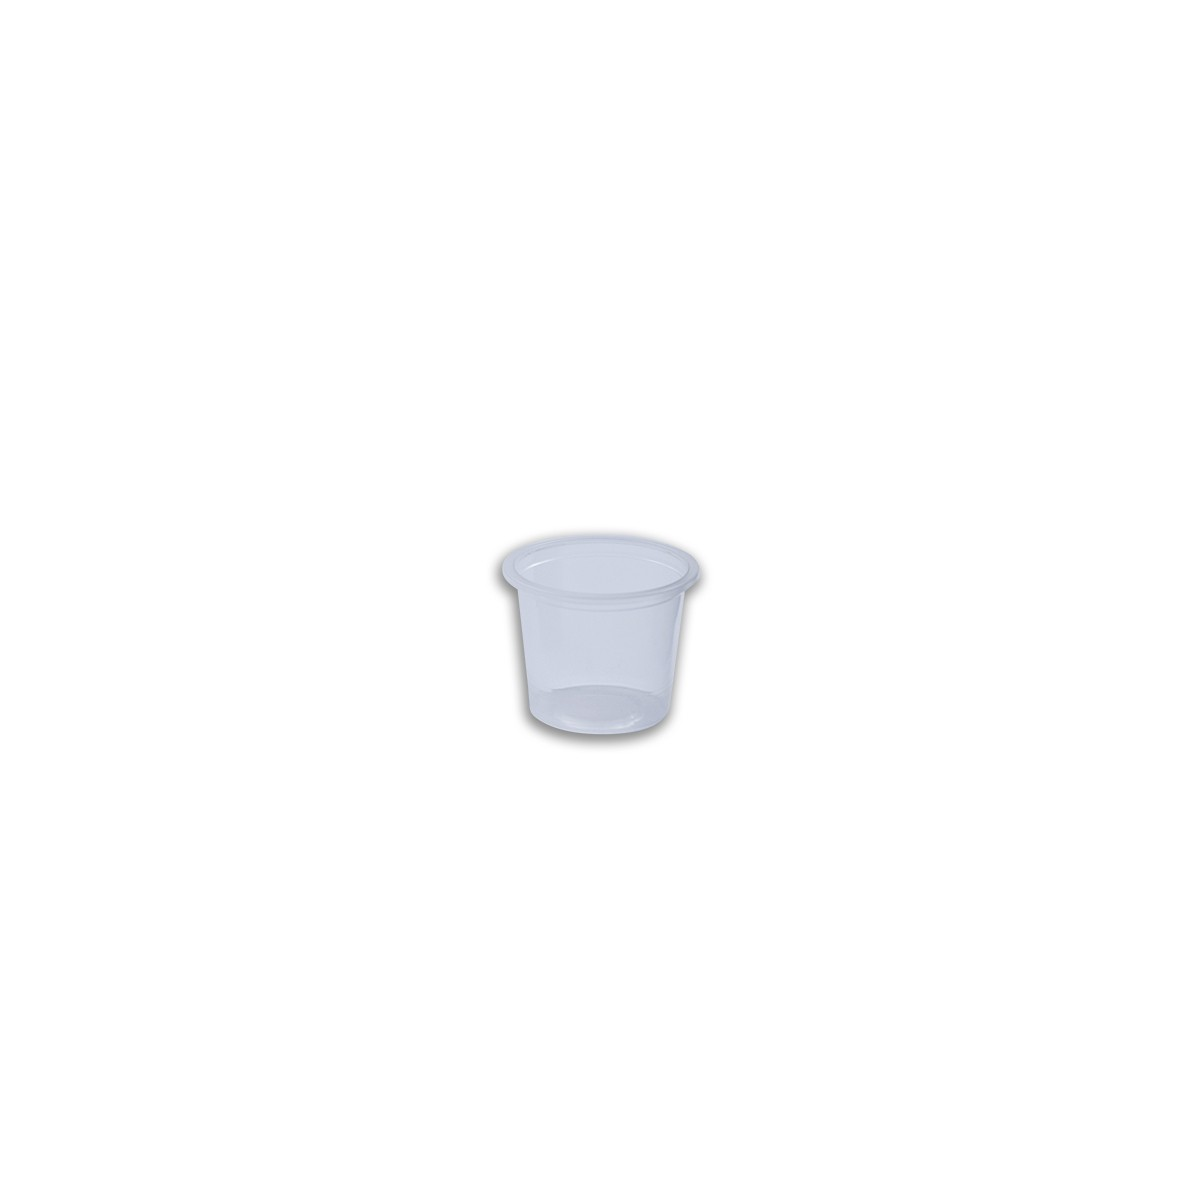 Tinypac Clear Round Portion Cup 30cc | 5000pcs